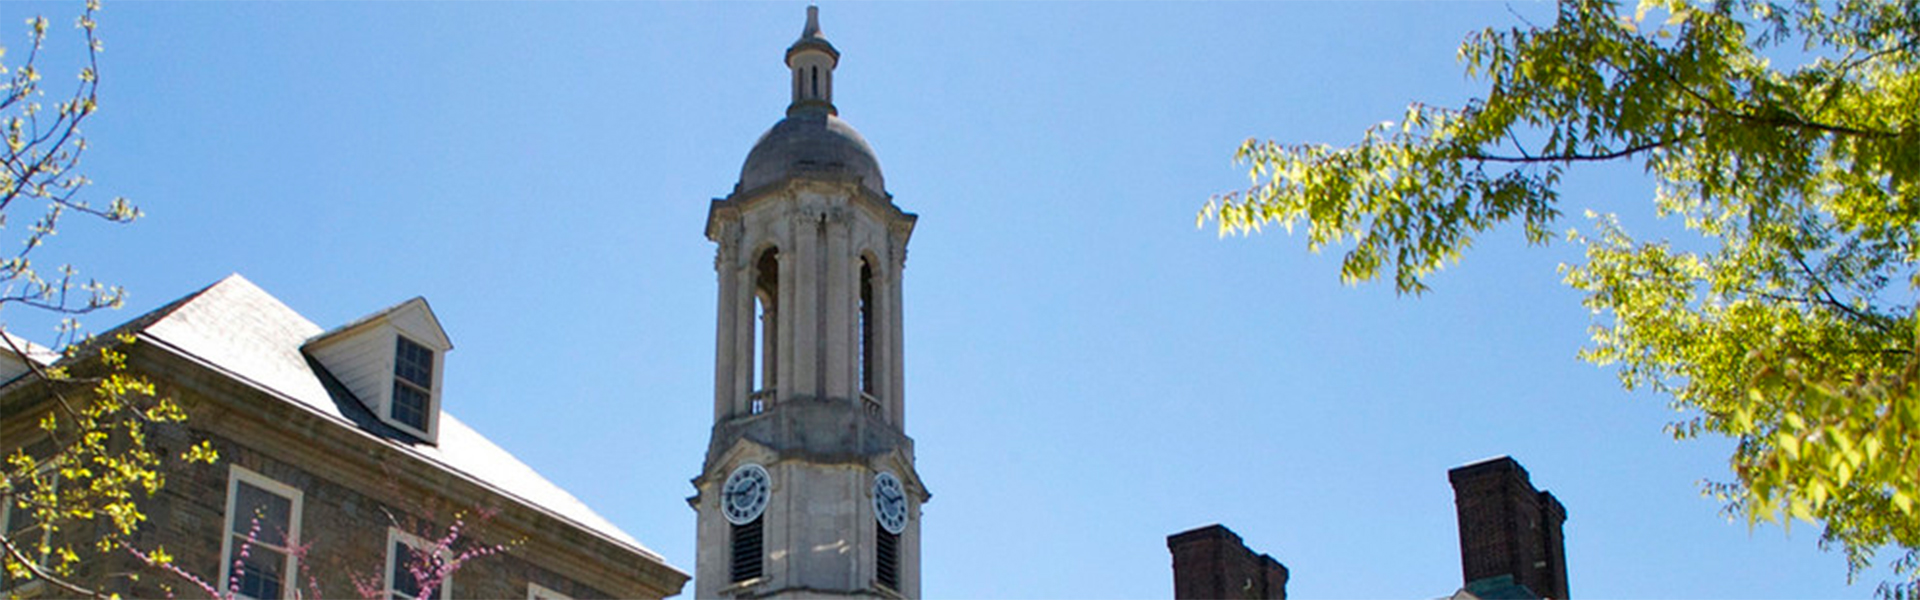 Old Main tower